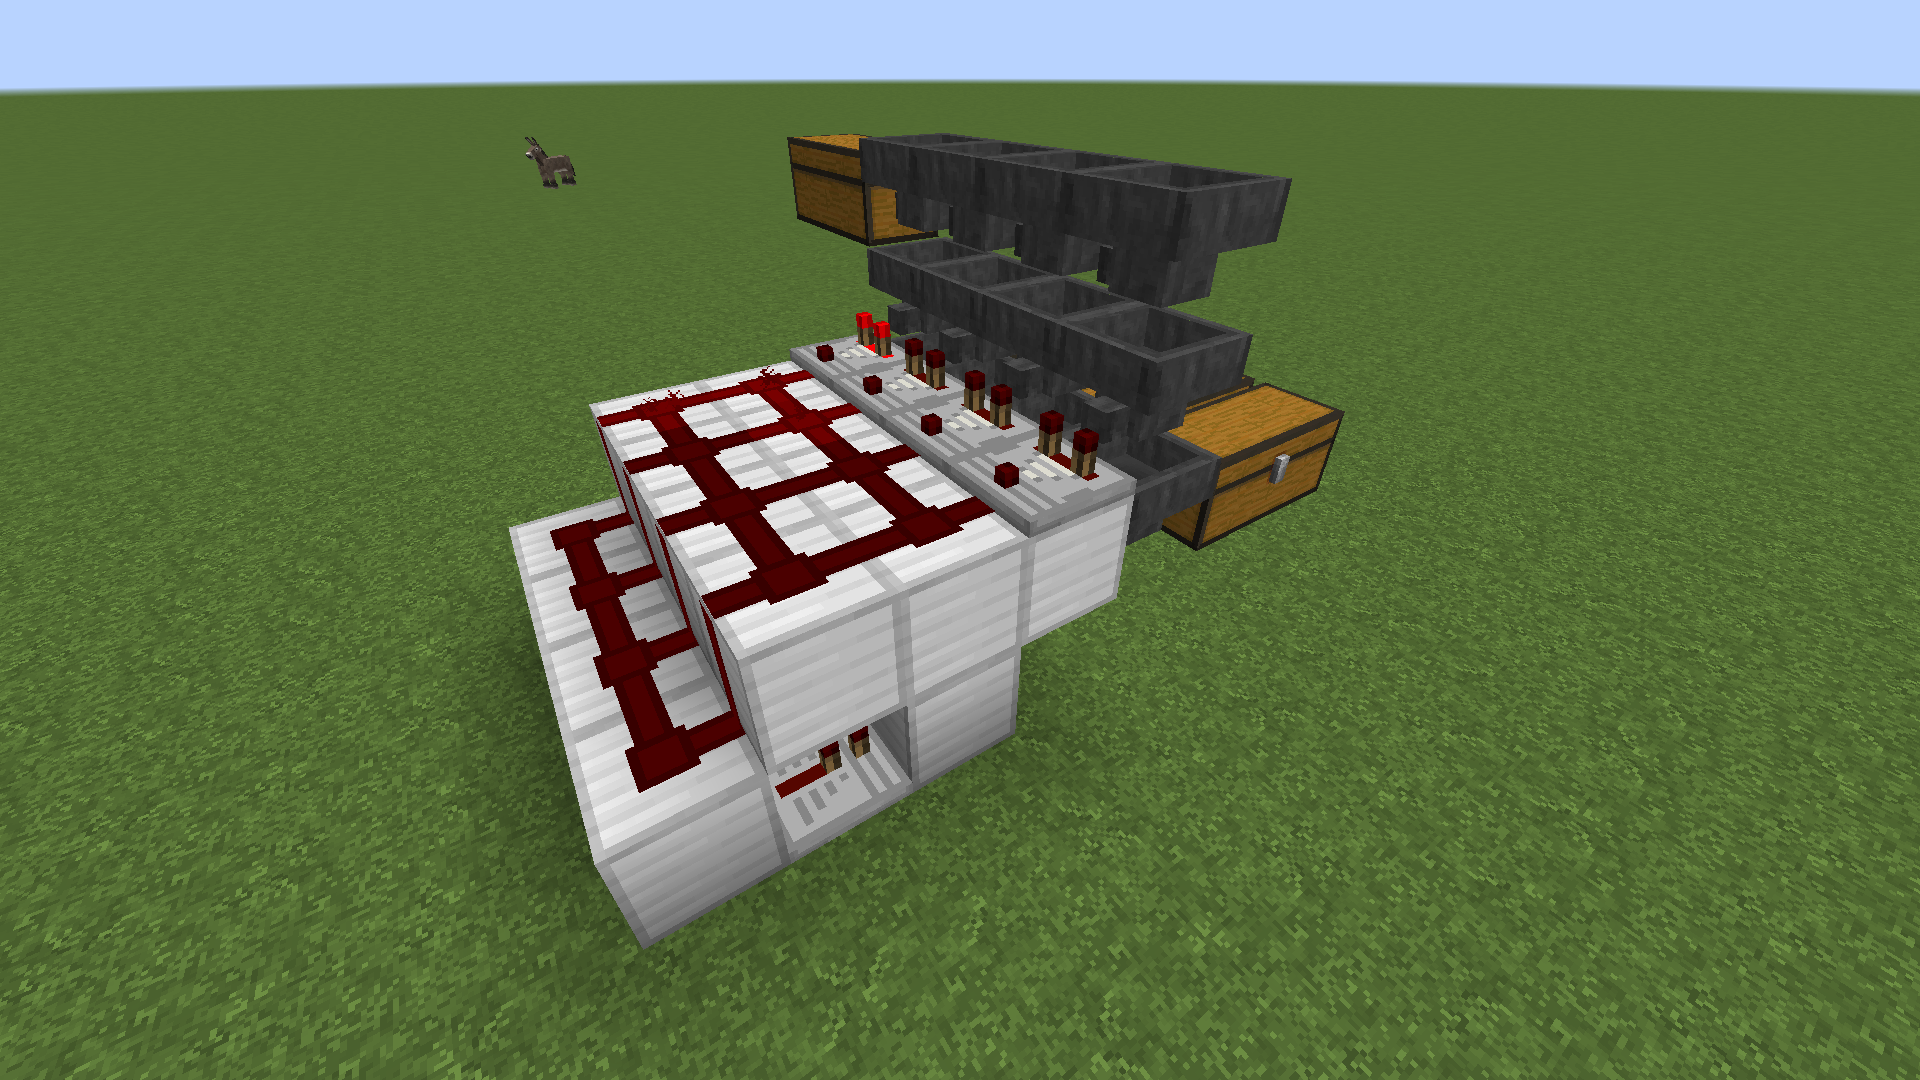 Item sorting - Redstone Discussion and Mechanisms - Minecraft